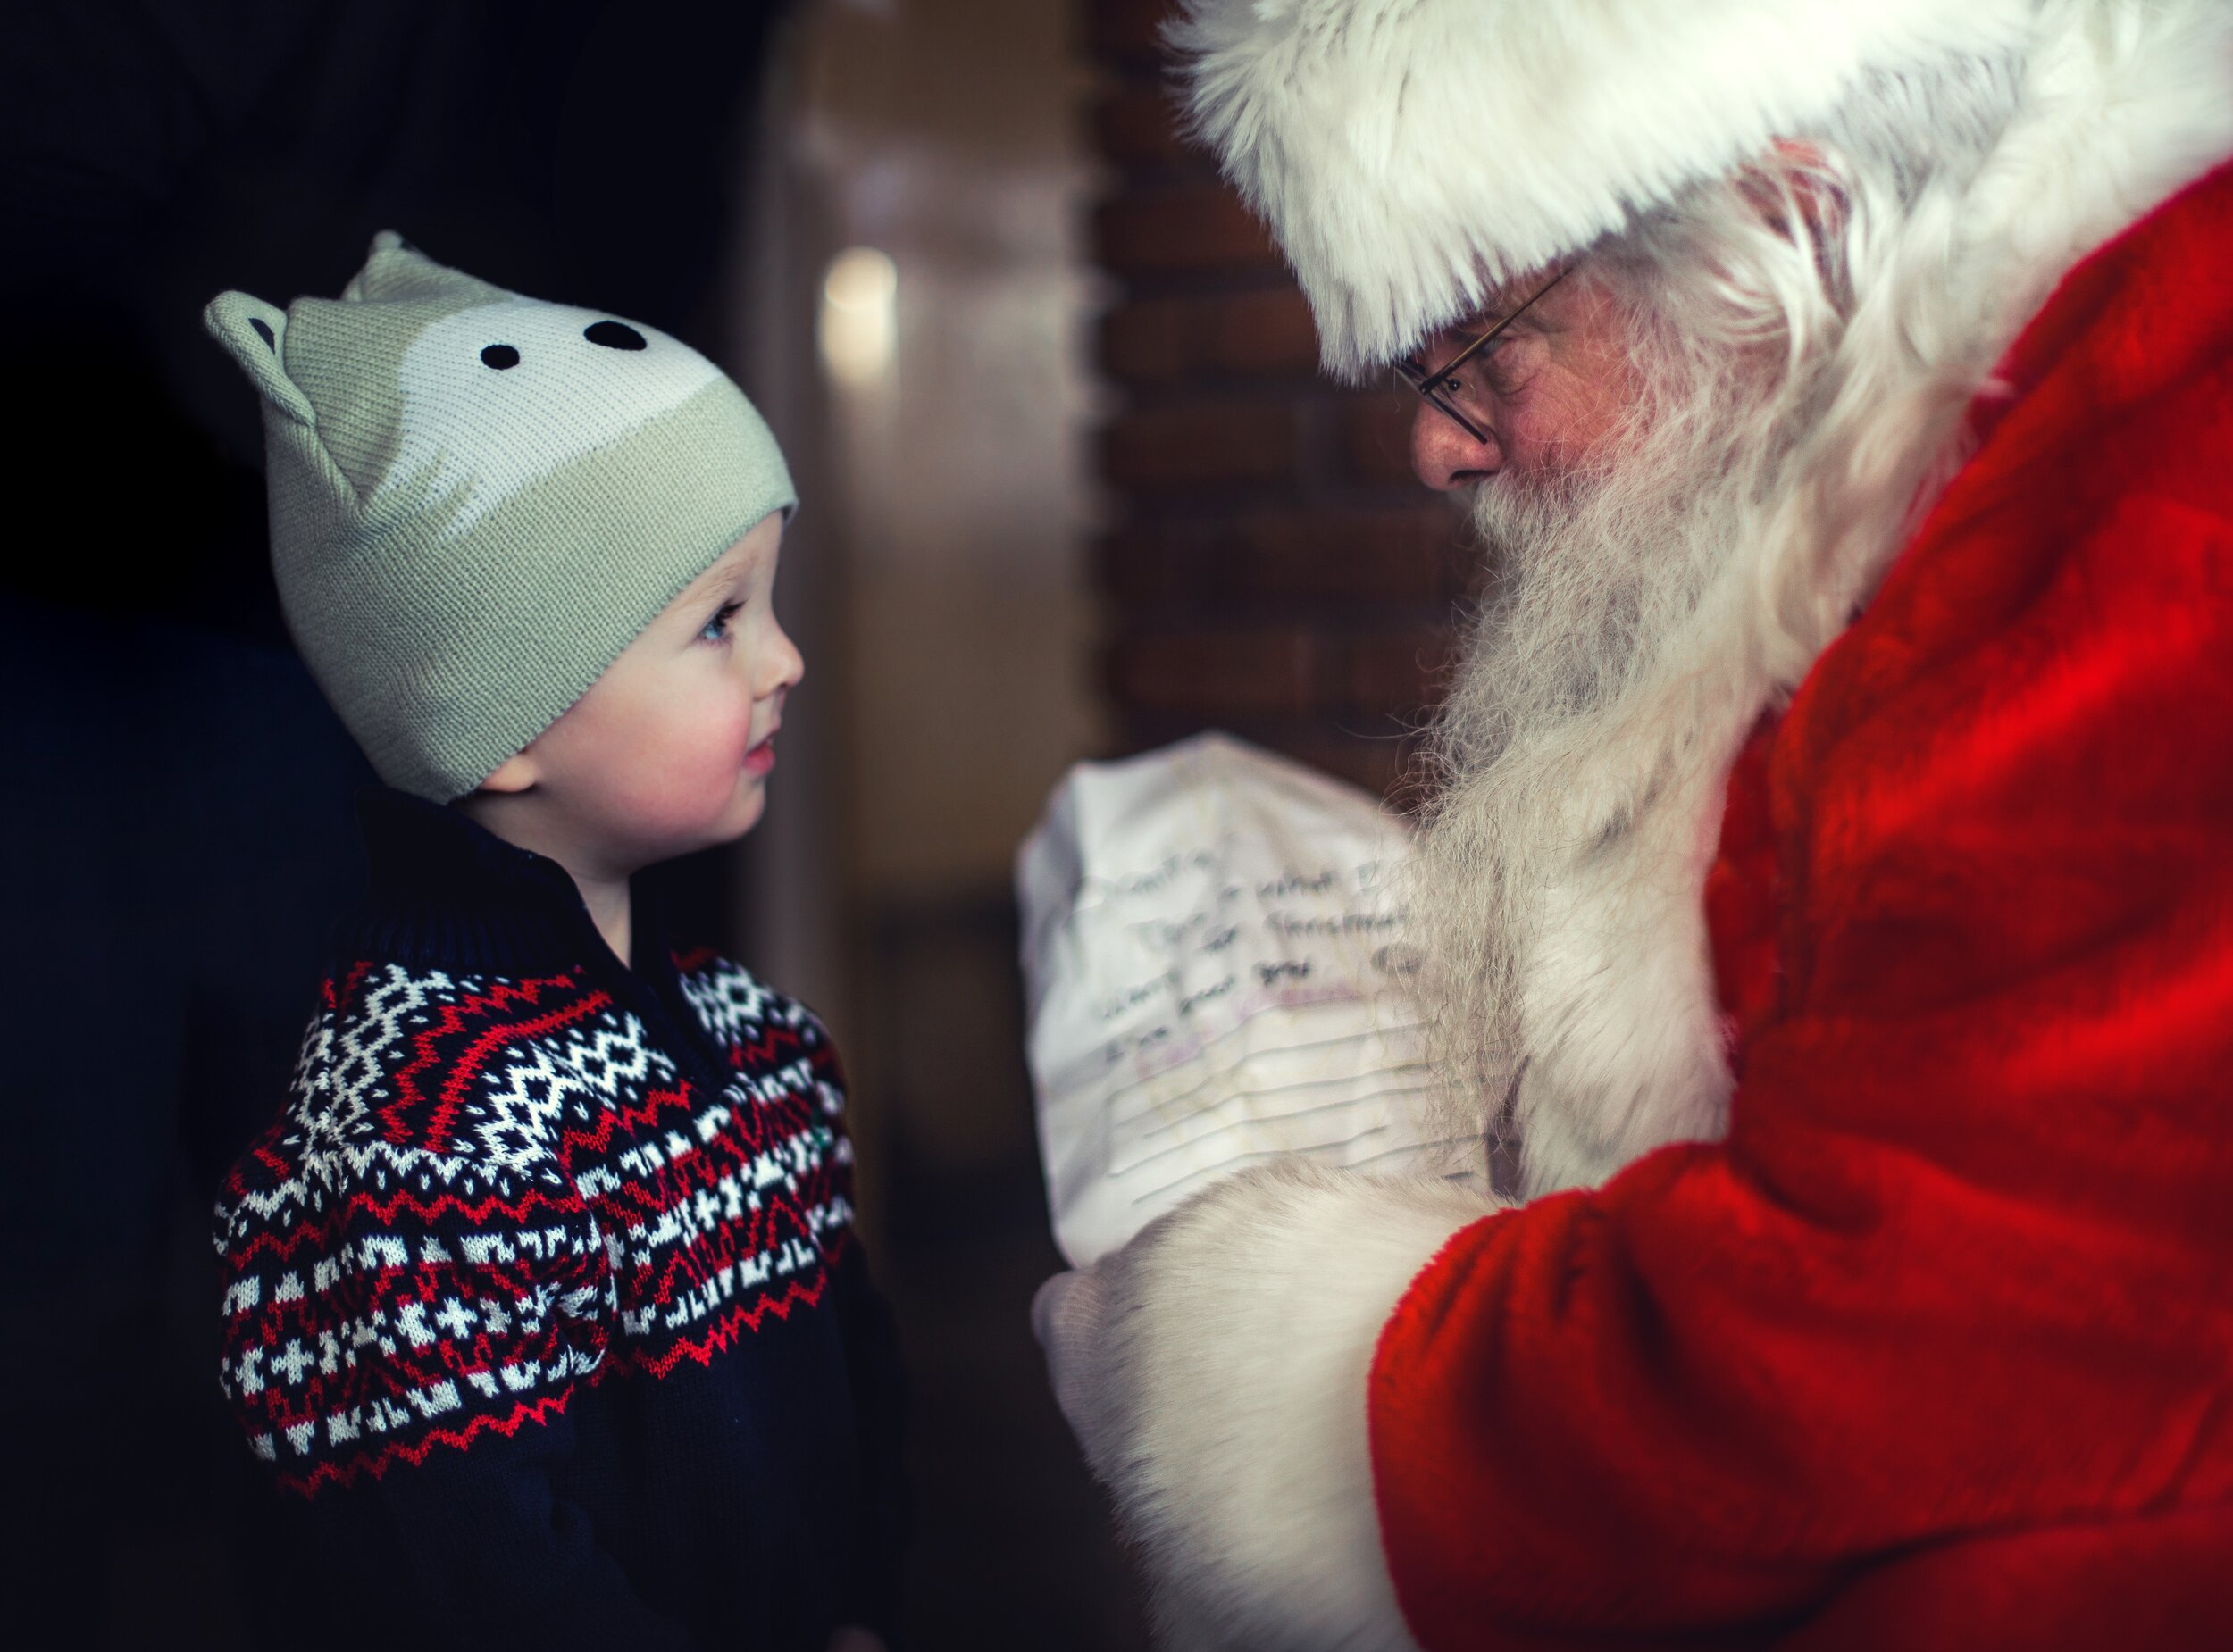 Free Photos with Santa! - Perfect for Christmas cards!